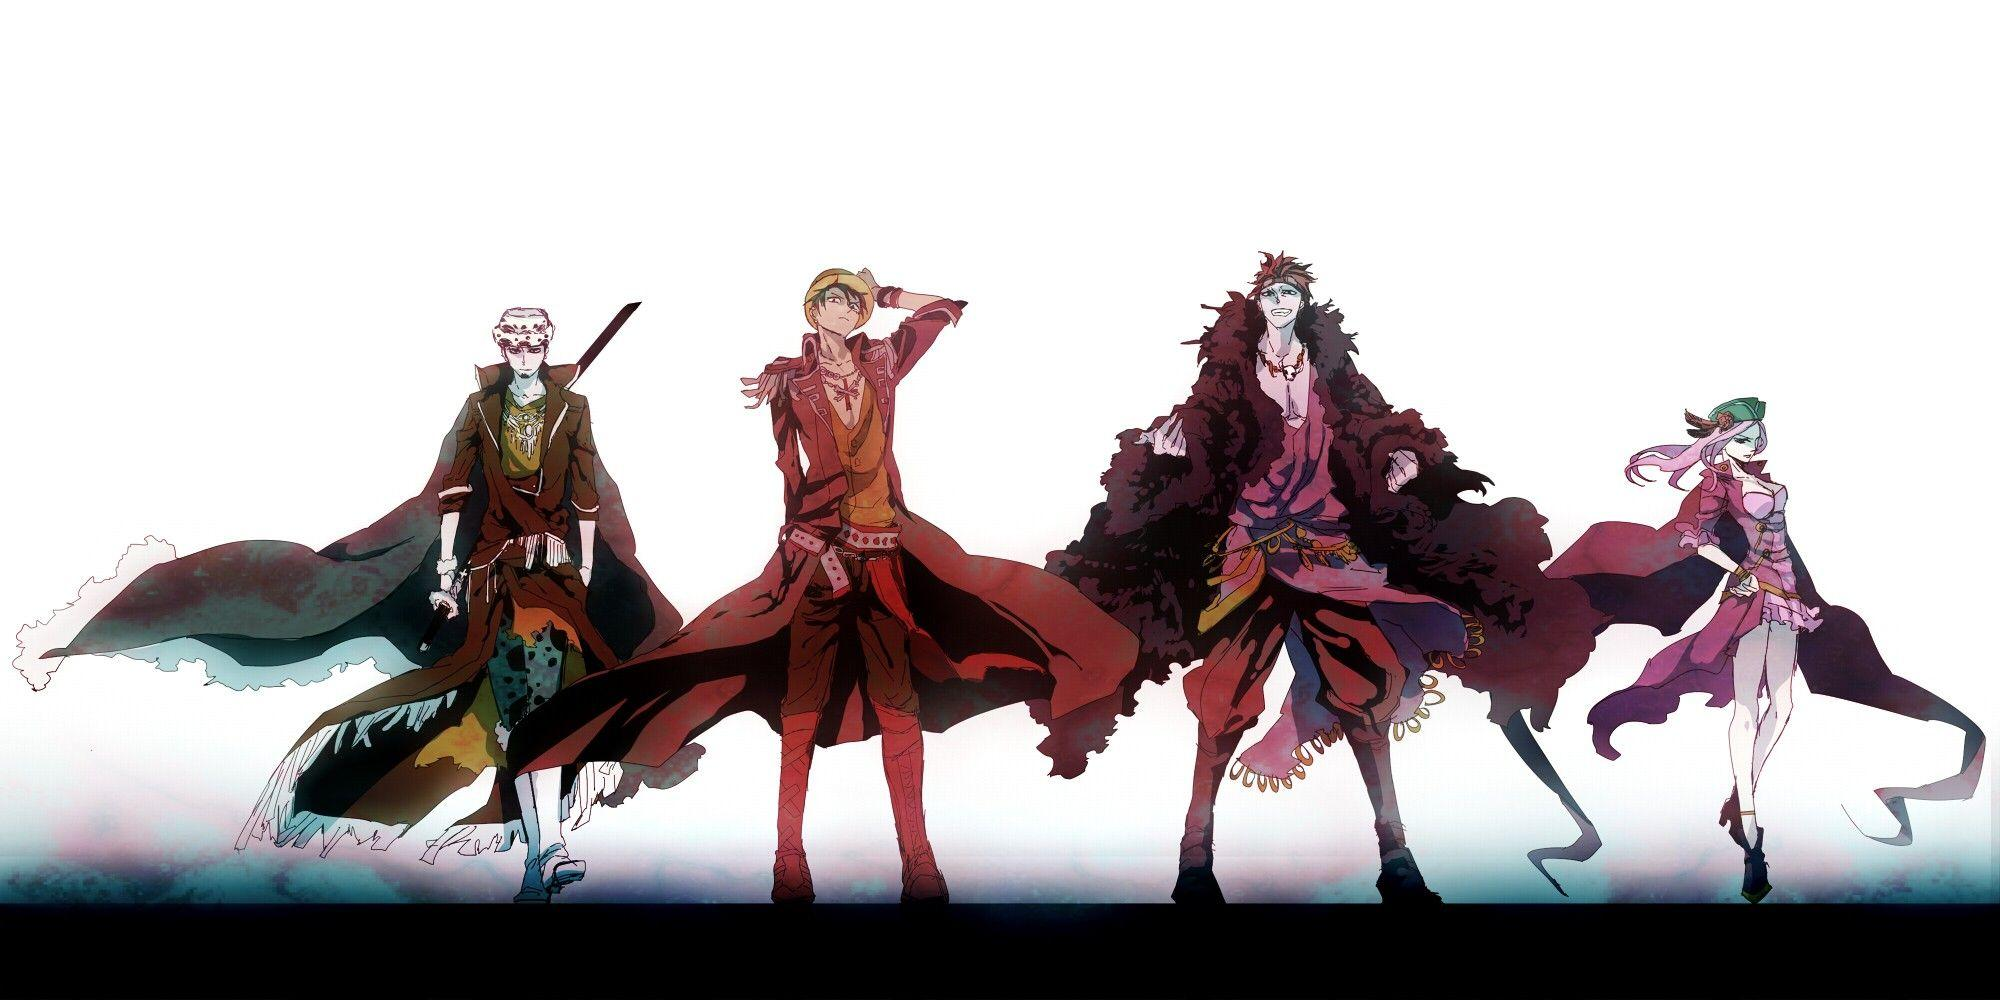 462 One Piece Wallpapers   One Piece Backgrounds Page 9